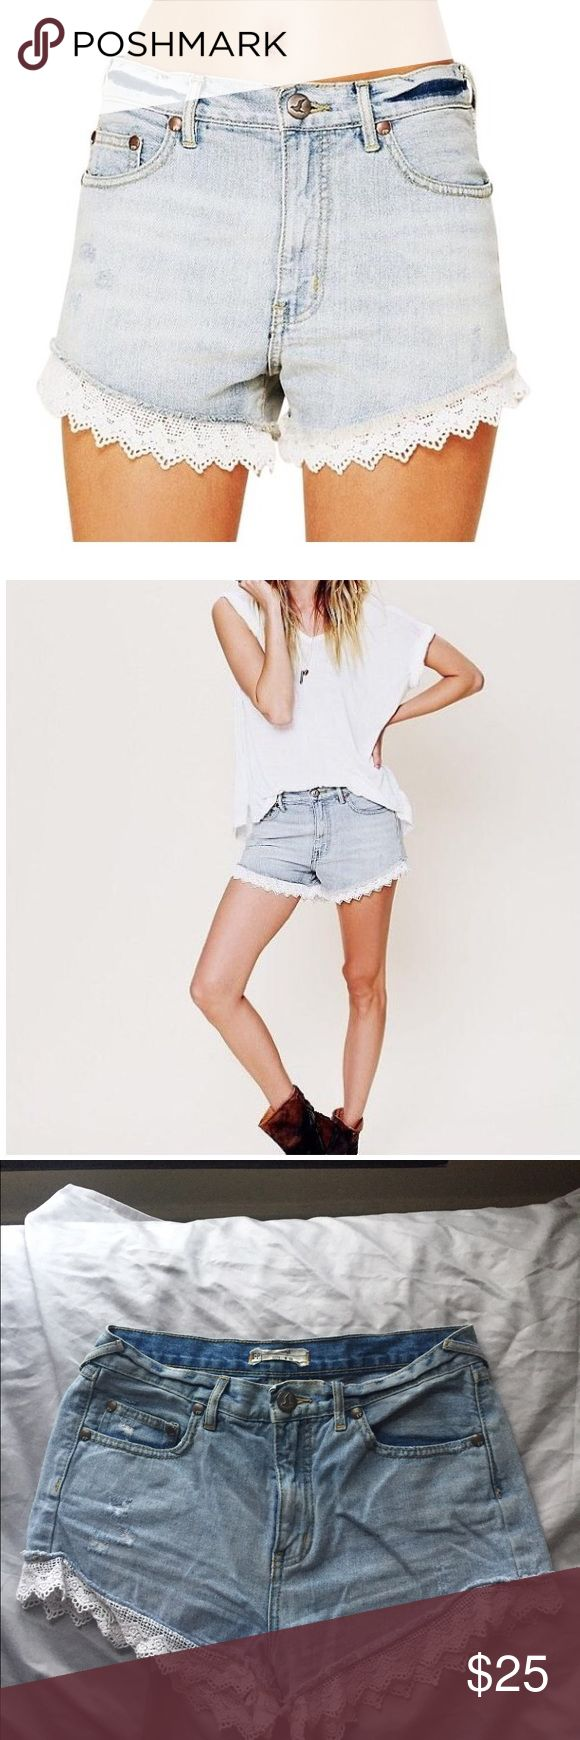 Free People lace trimmed shorts Free People lace trimmed shorts in light denim.  Medium-high waist. No flaws, great condition, worn handful of times. Size 28. Free People Shorts Jean Shorts